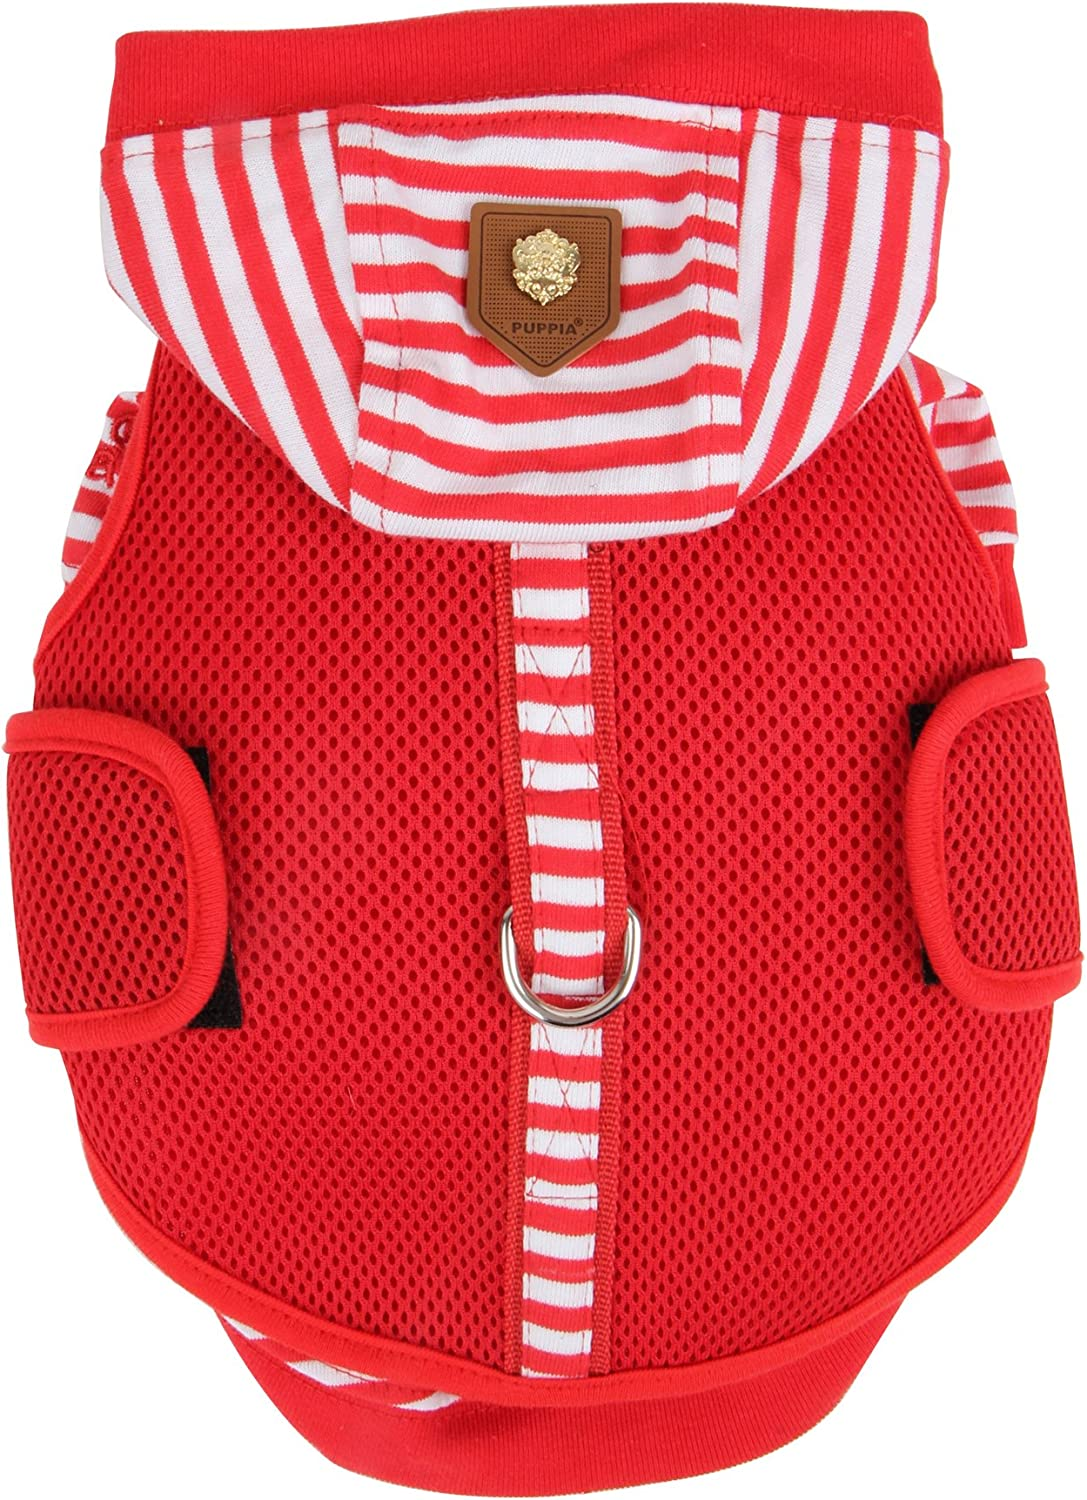 Puppia Twosome Harness and Hood Shirt Allin1, Large, Red